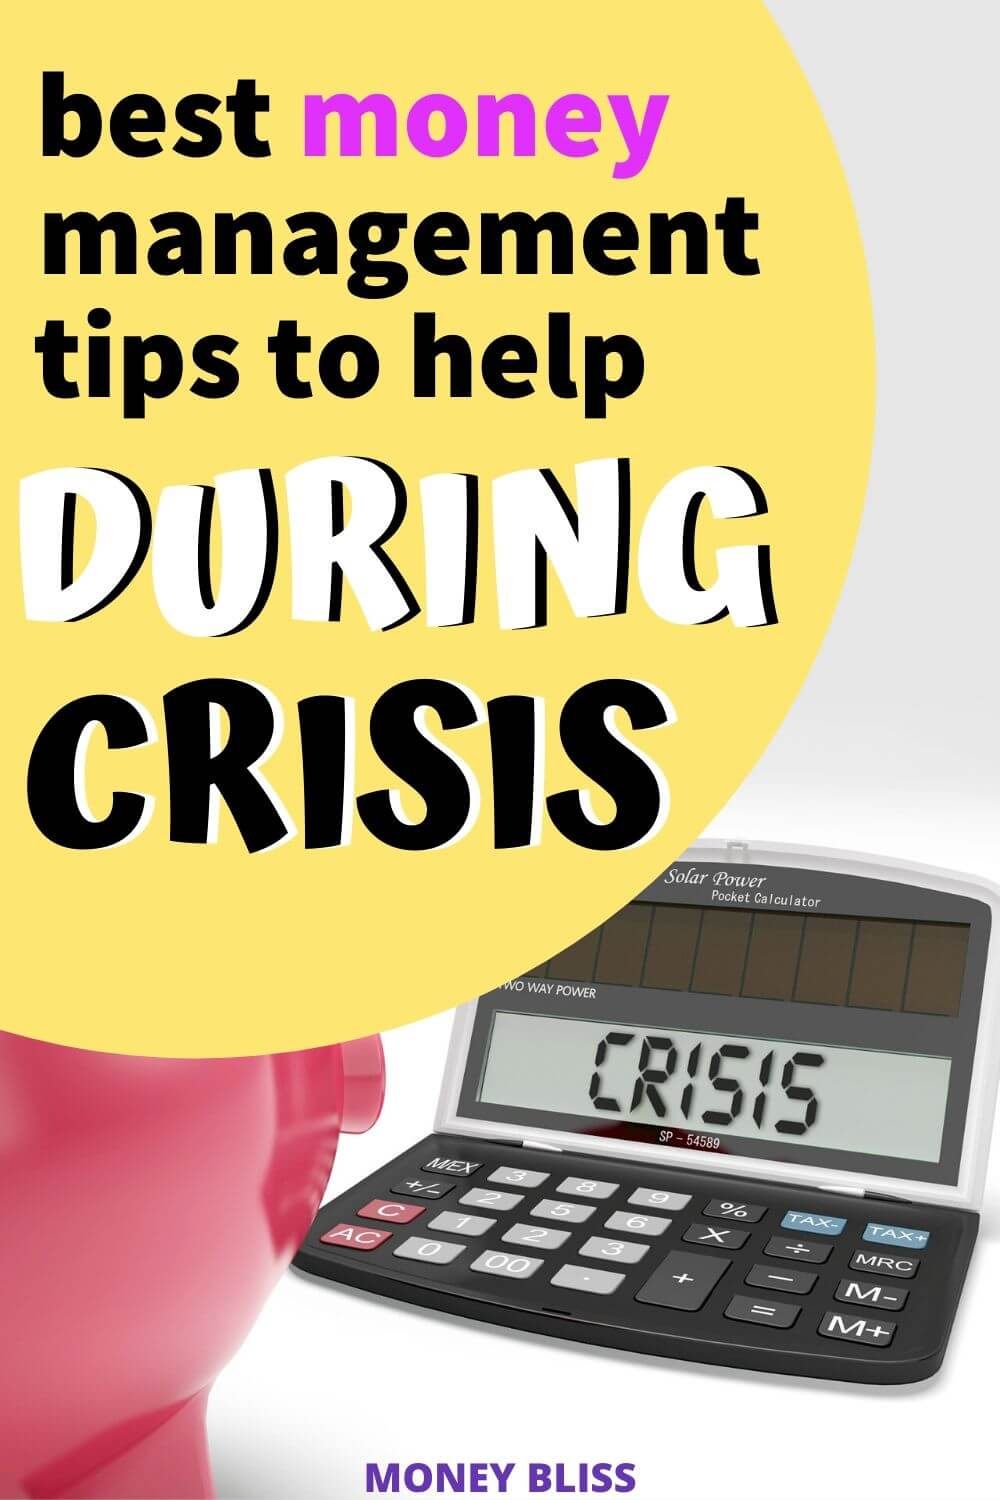 Don't let the current global crisis ruin your personal finances. Here are the best money management tips to help during a crisis. The world's outbreak doesn't mean a personal financial crisis. Improve your budget and change your life with this learning. Find financial peace.